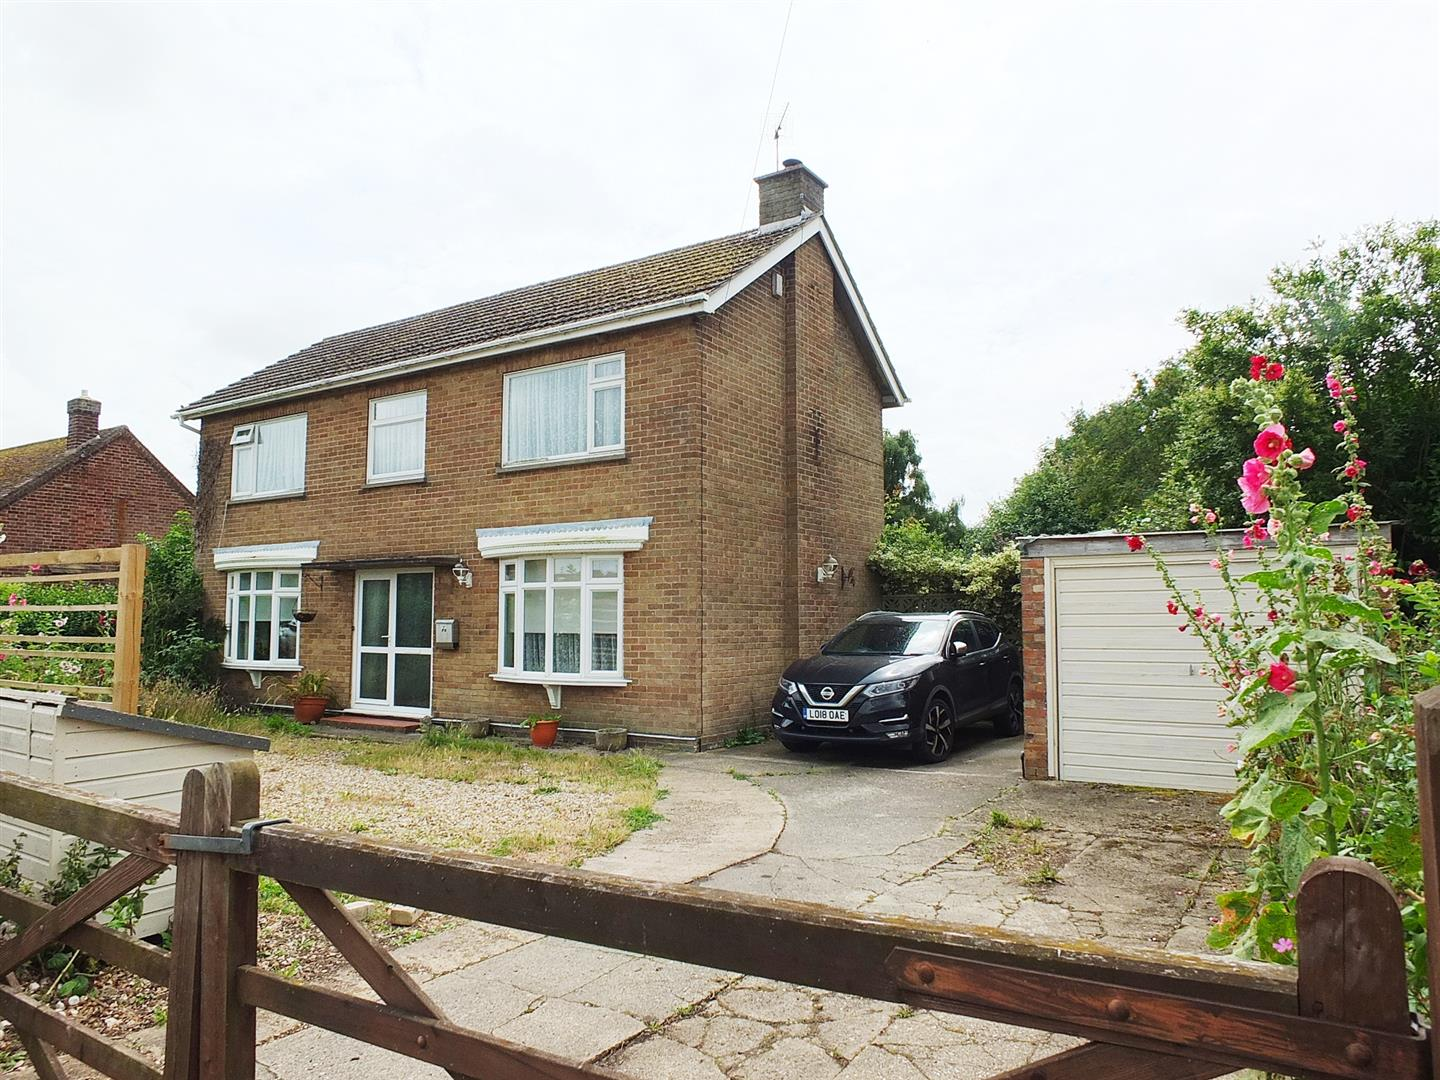 3 bed detached house for sale in Station Road, Tydd Gote Wisbech, PE13